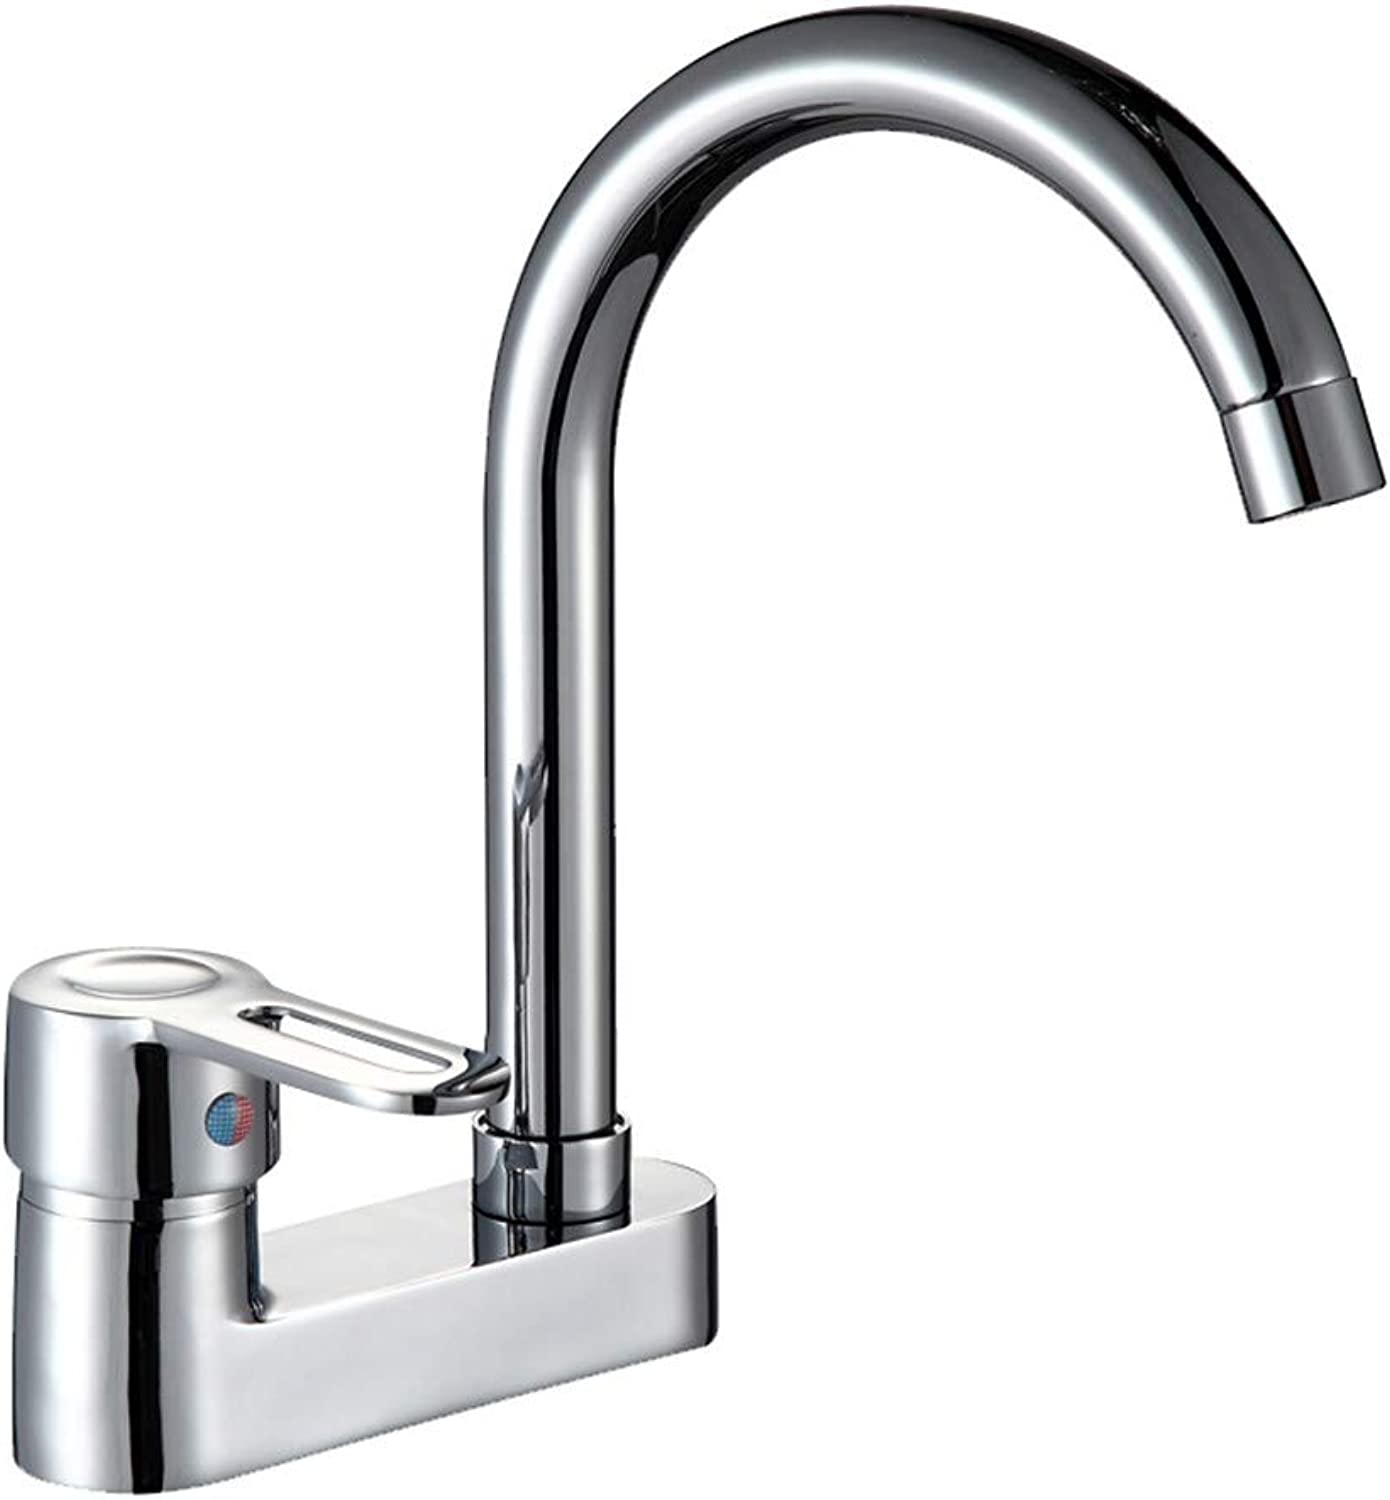 SADF Basin Faucet Single Handle Double Hole Mixing Valve Double Wash Basin Hot And Cold Water Faucet